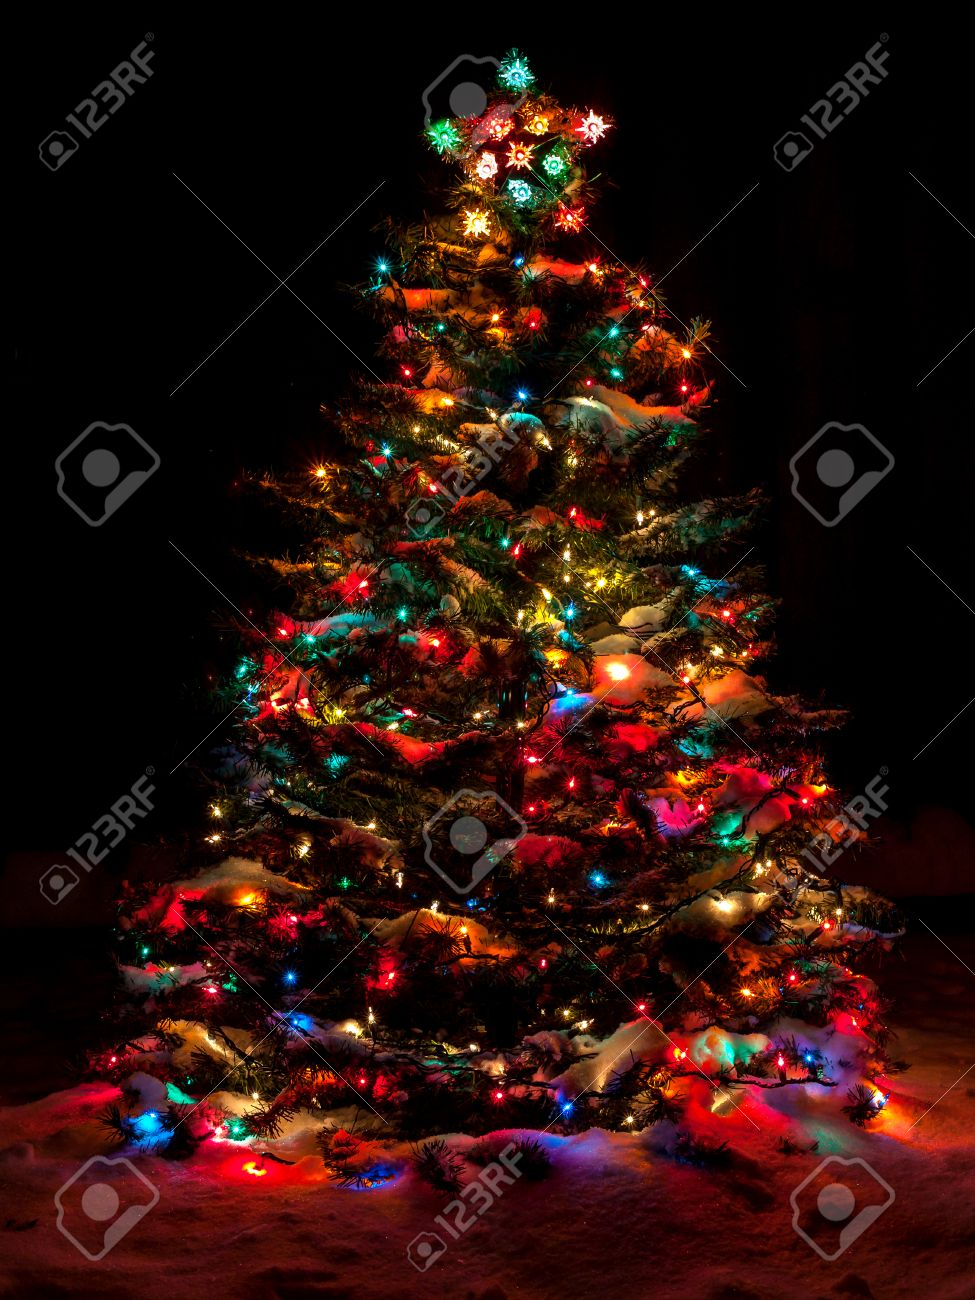 Snow Covered Christmas Tree With Multi Colored Lights Stock Photo  - Multi Colored Christmas Trees